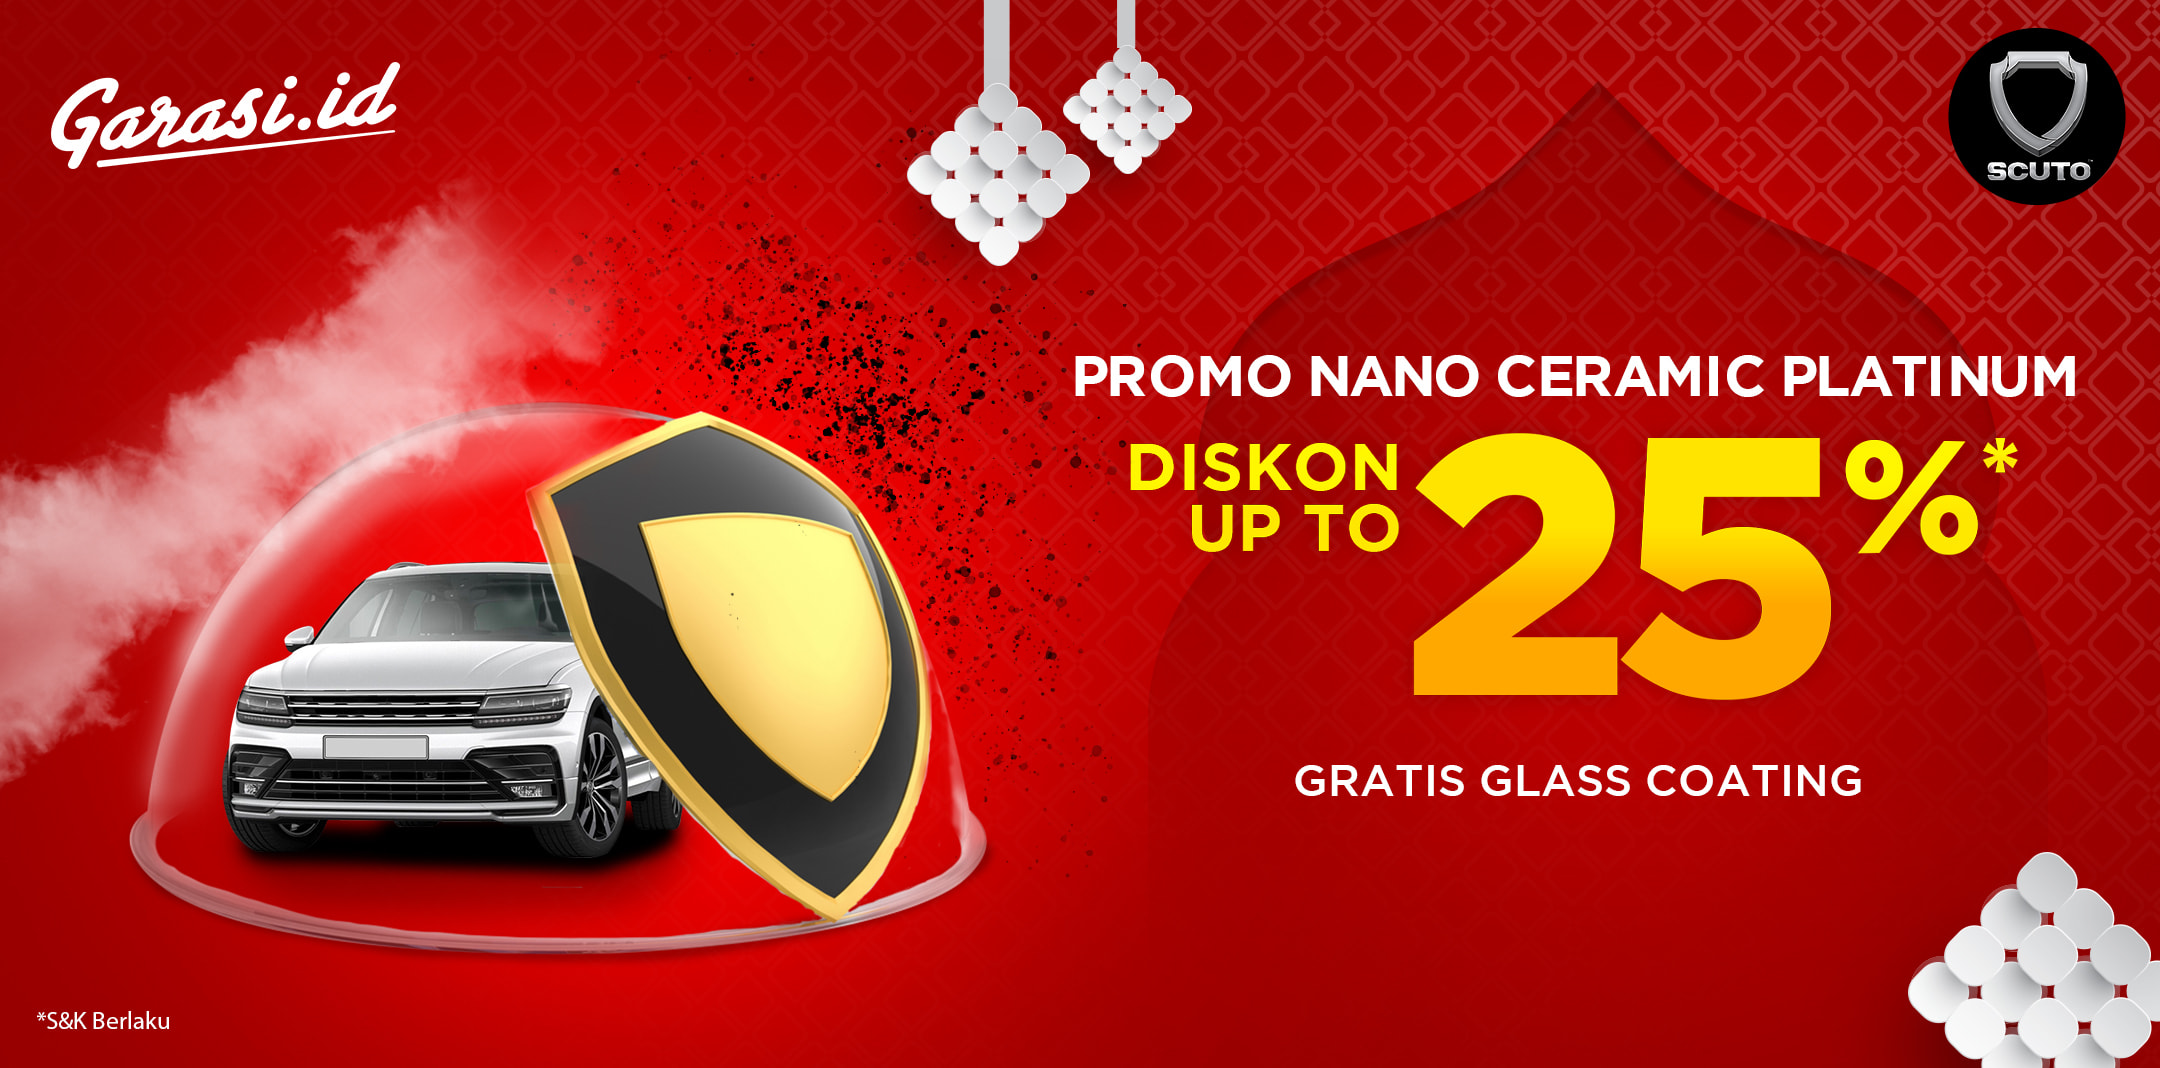 Promo Nano Ceramic Platinum Free Glass Coating Up to 25%